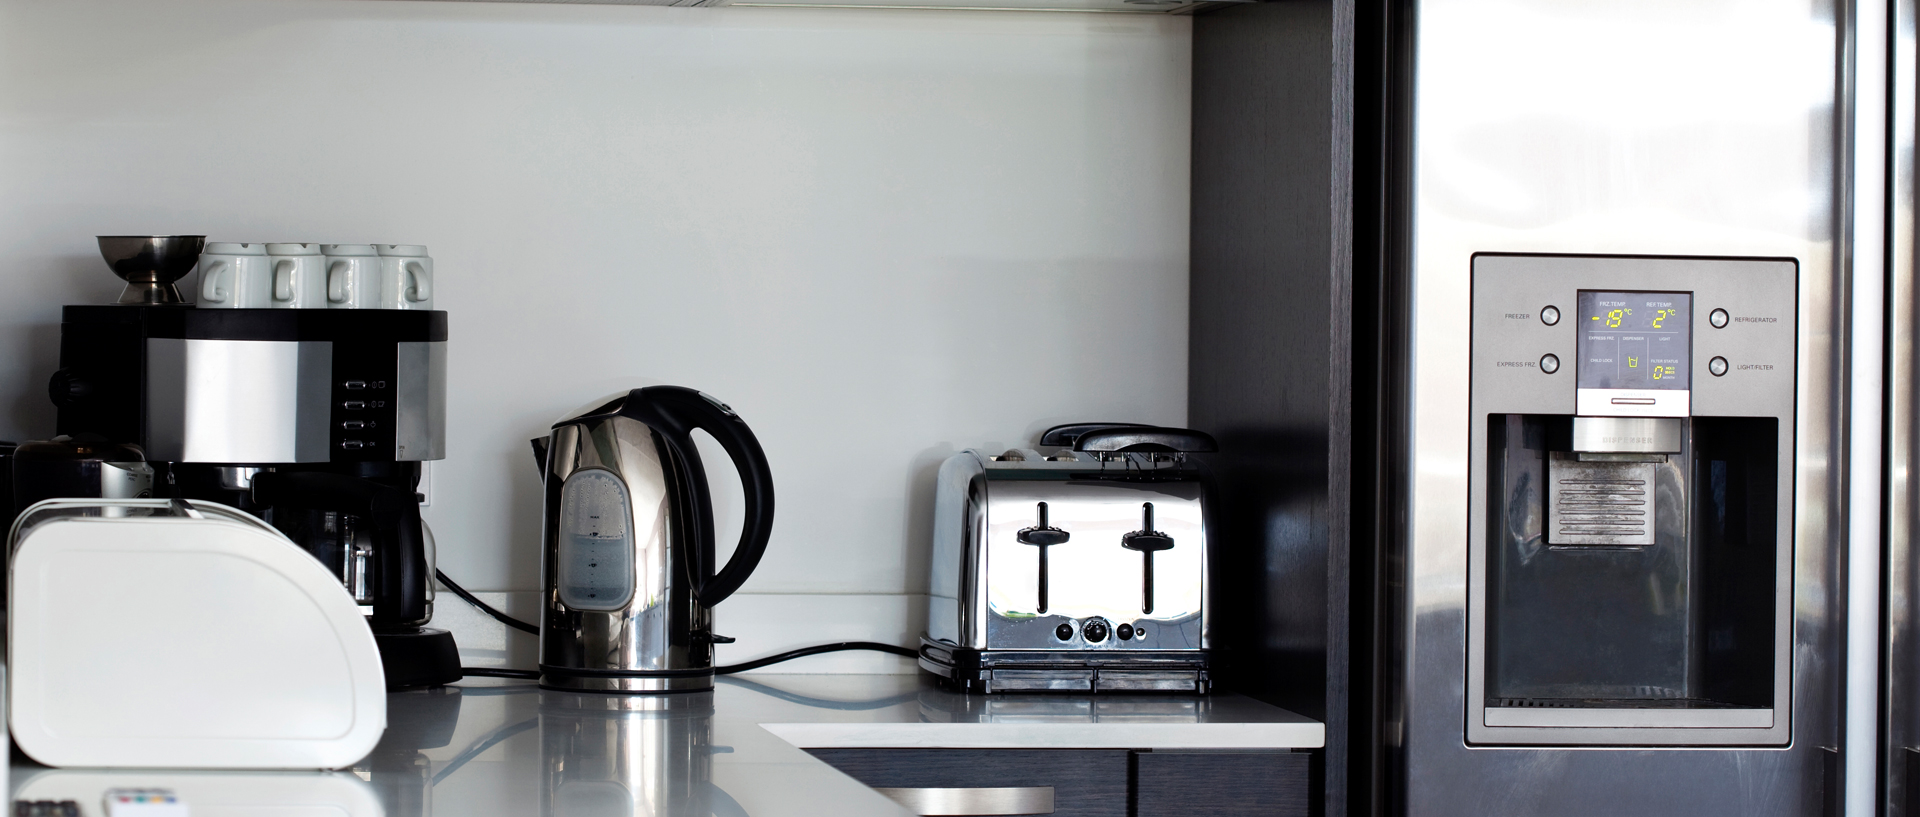 How To Clean Your Small Appliances Consumer Reports